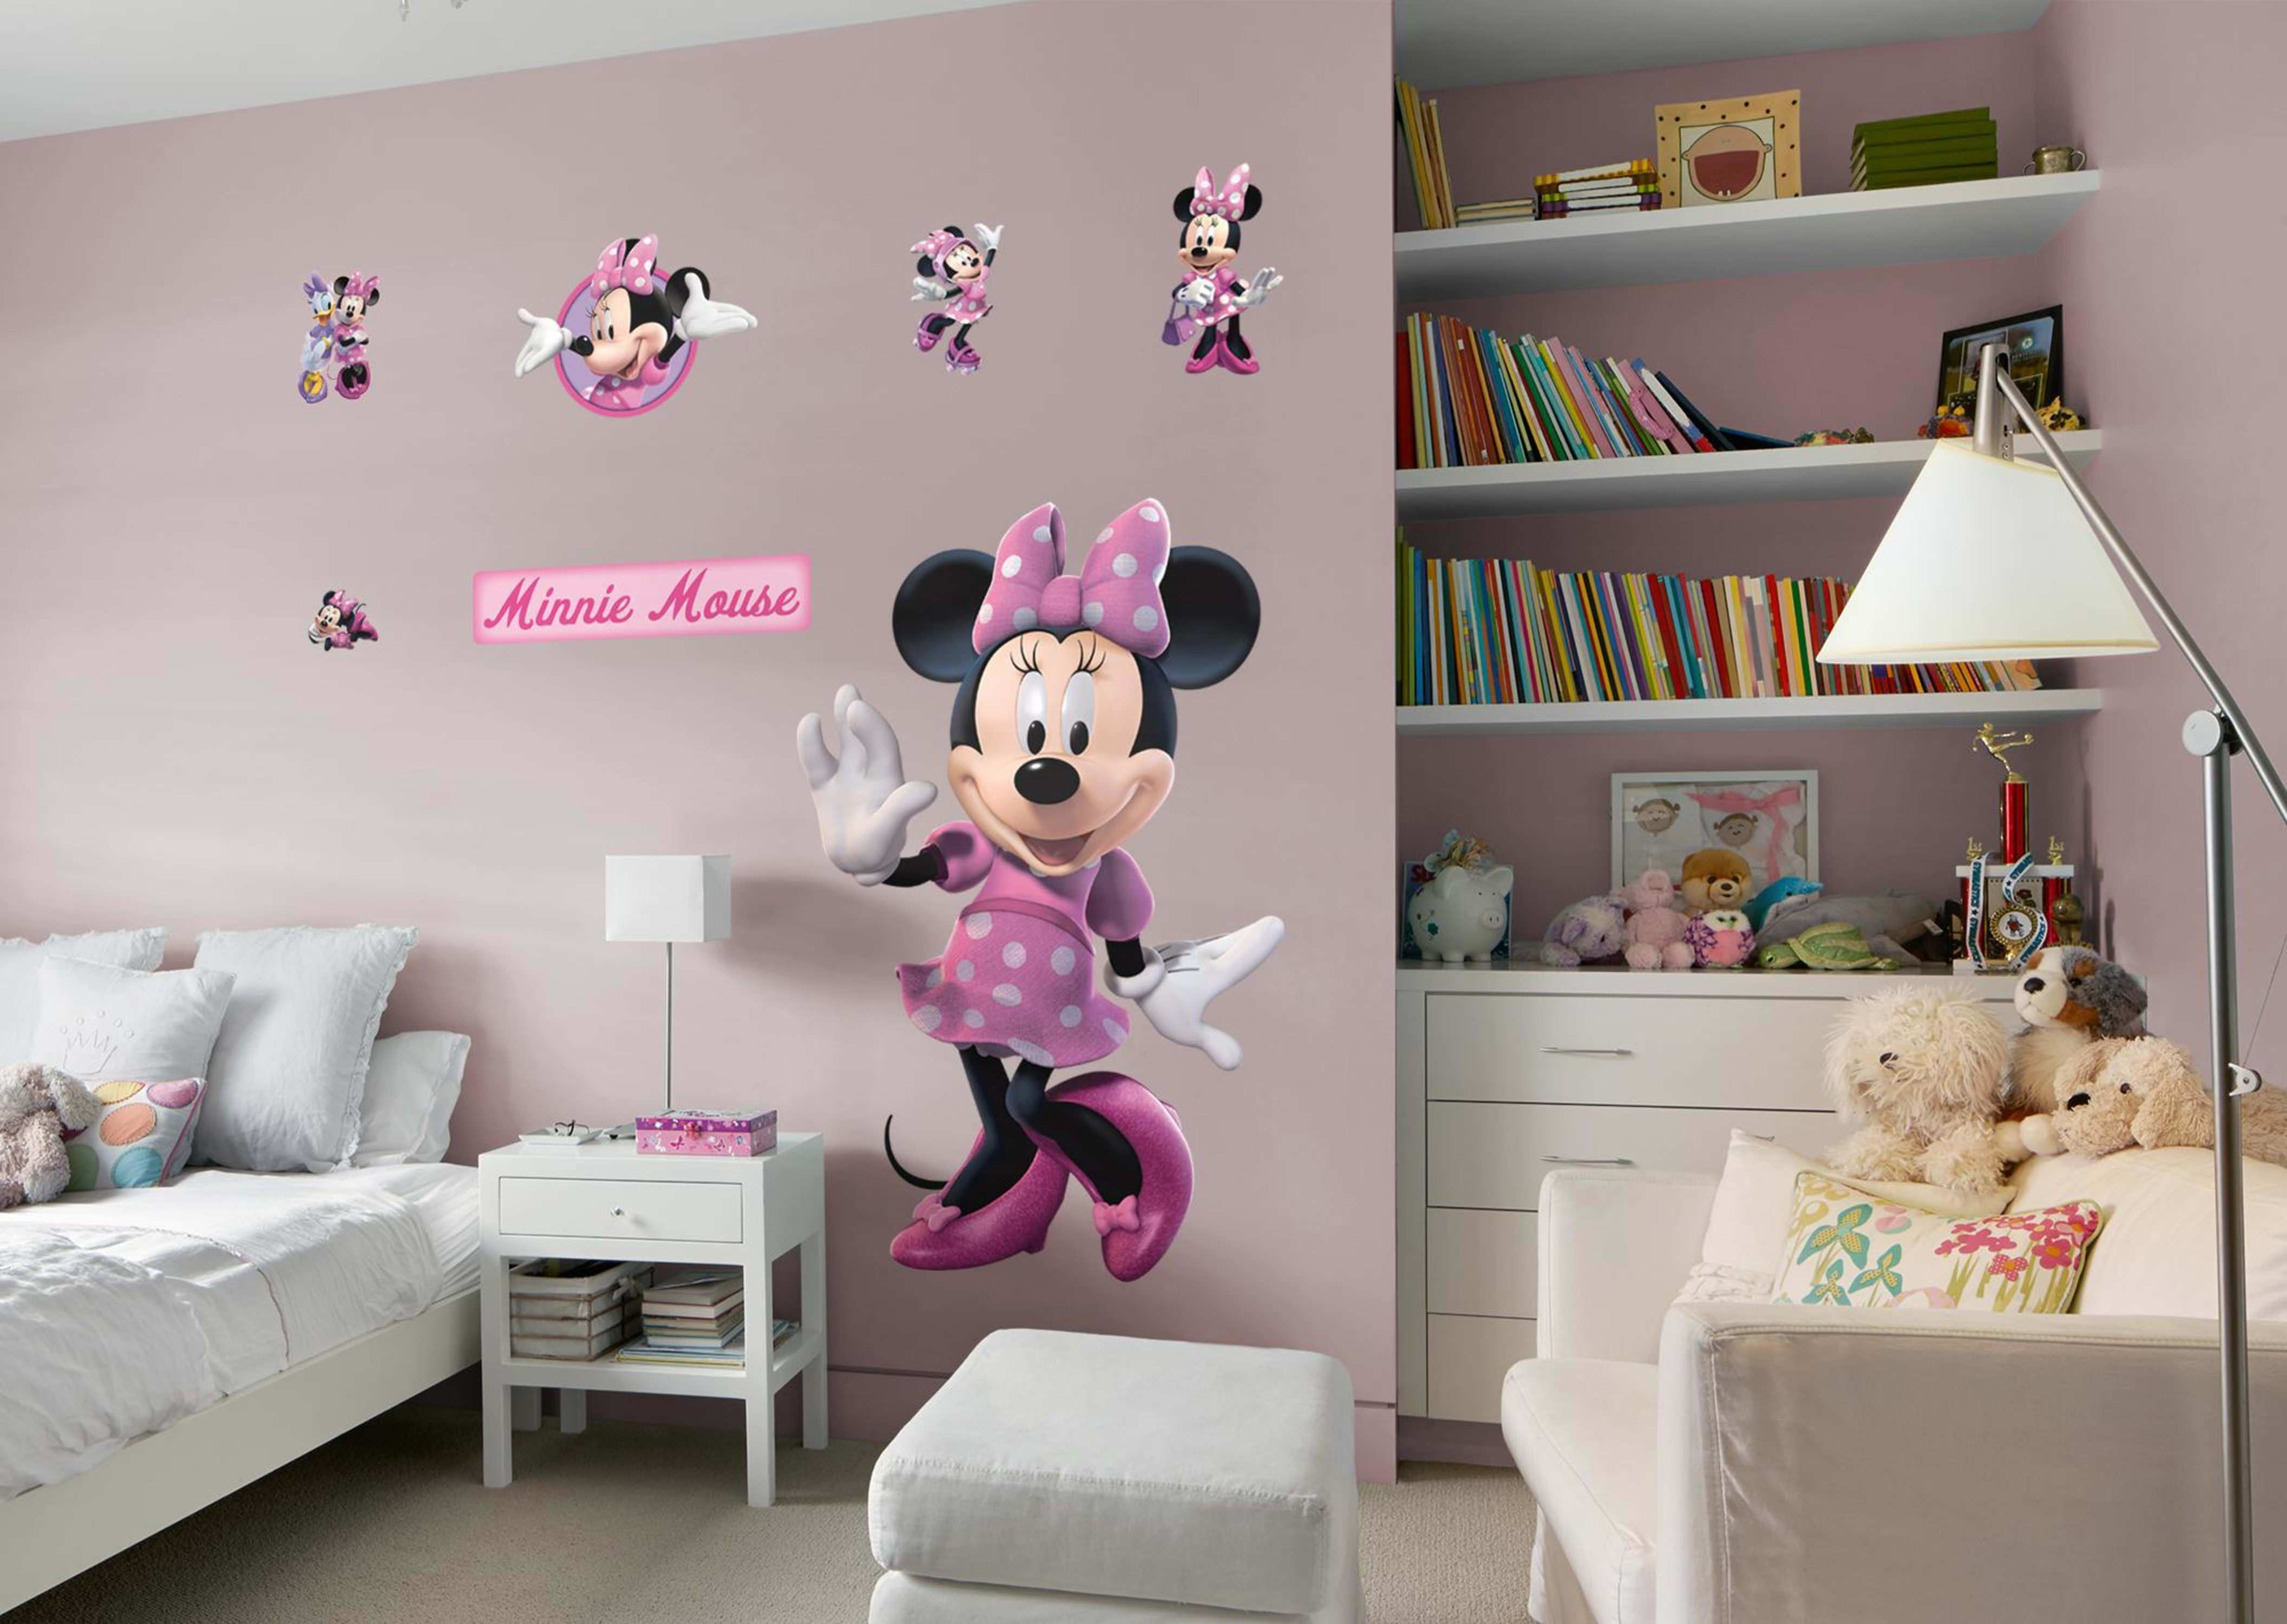 Minnie Mouse Giant ficially Licensed Disney Removable Wall Decal